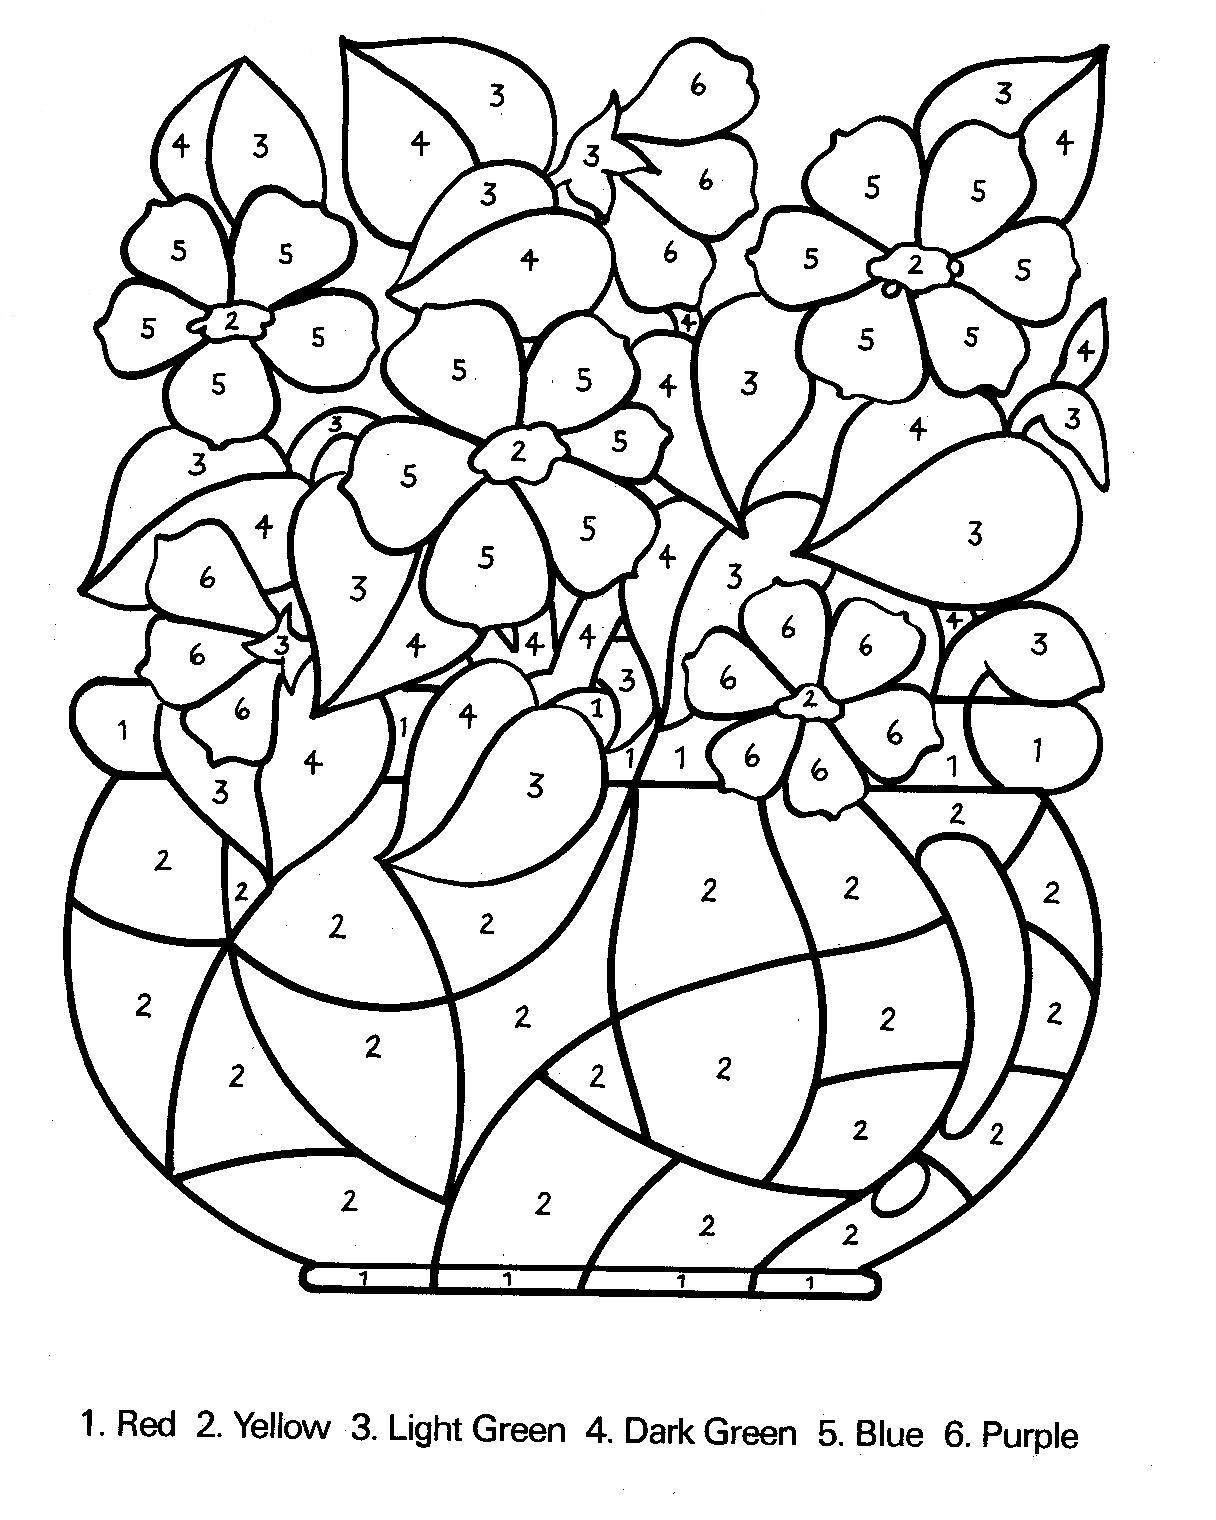 Number Coloring Pages (4) | Coloring Kids